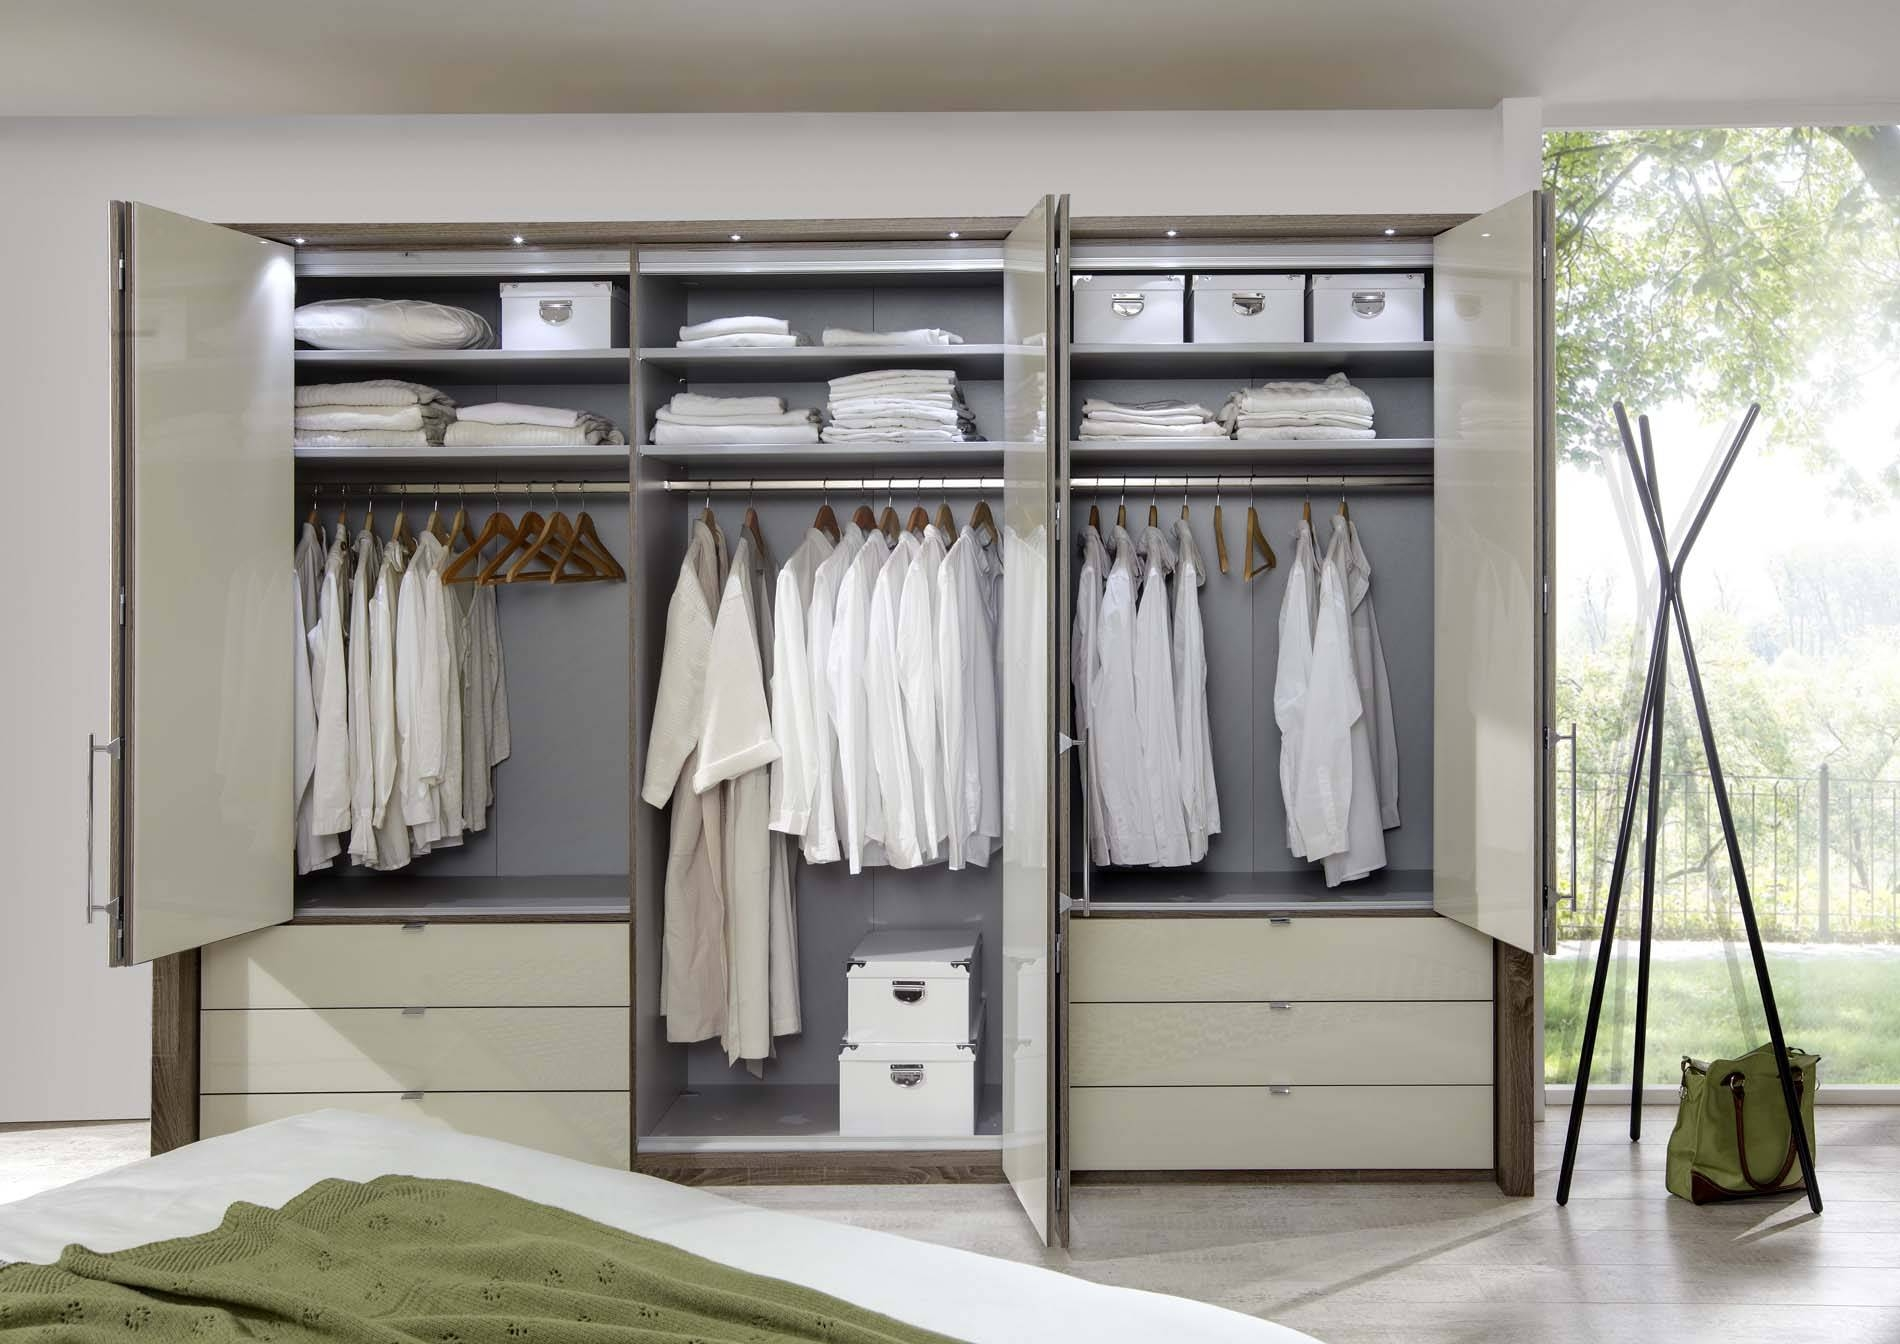 Kensington 6 Door 6 Drawer Wardrobe | Crendon Beds intended for 6 Door Wardrobes (Image 8 of 15)